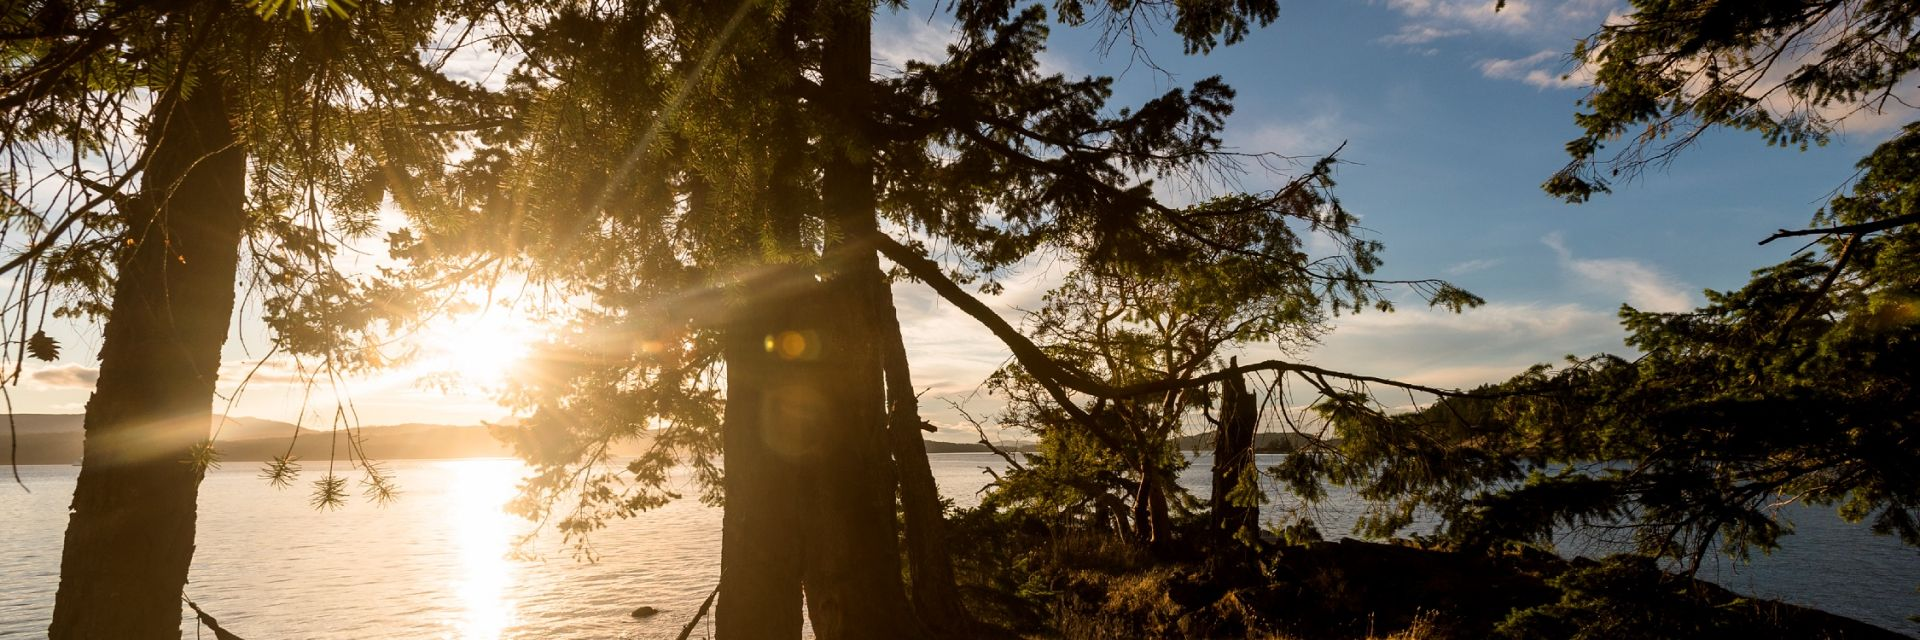 A person relaxing in a hammock amongst the trees watching the sunset on Pender Island